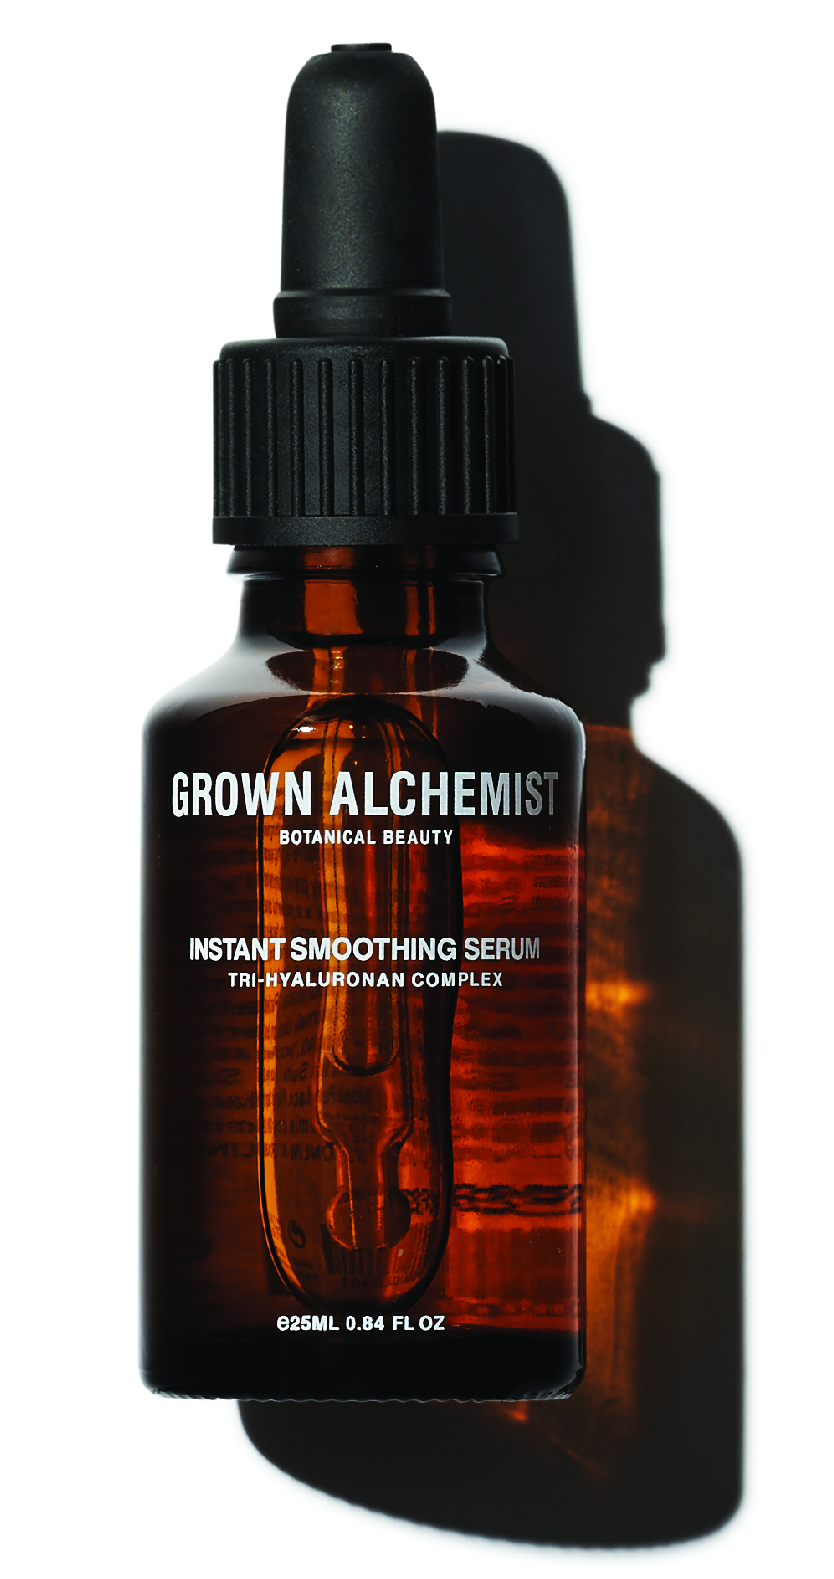 Grown Alchemist – Instant Smoothing Serum